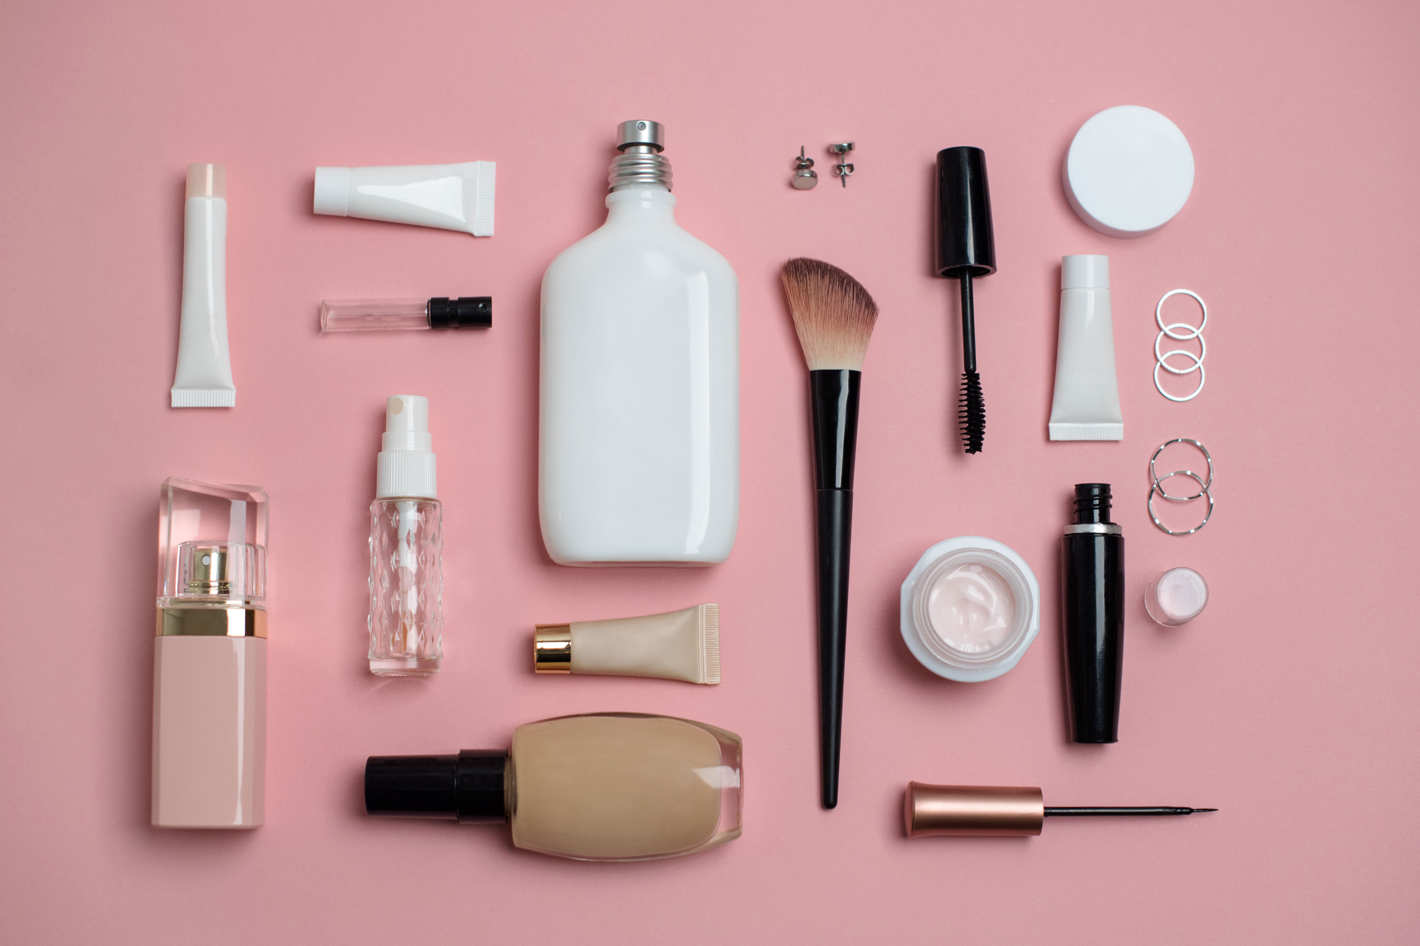 Various beauty products laid out.